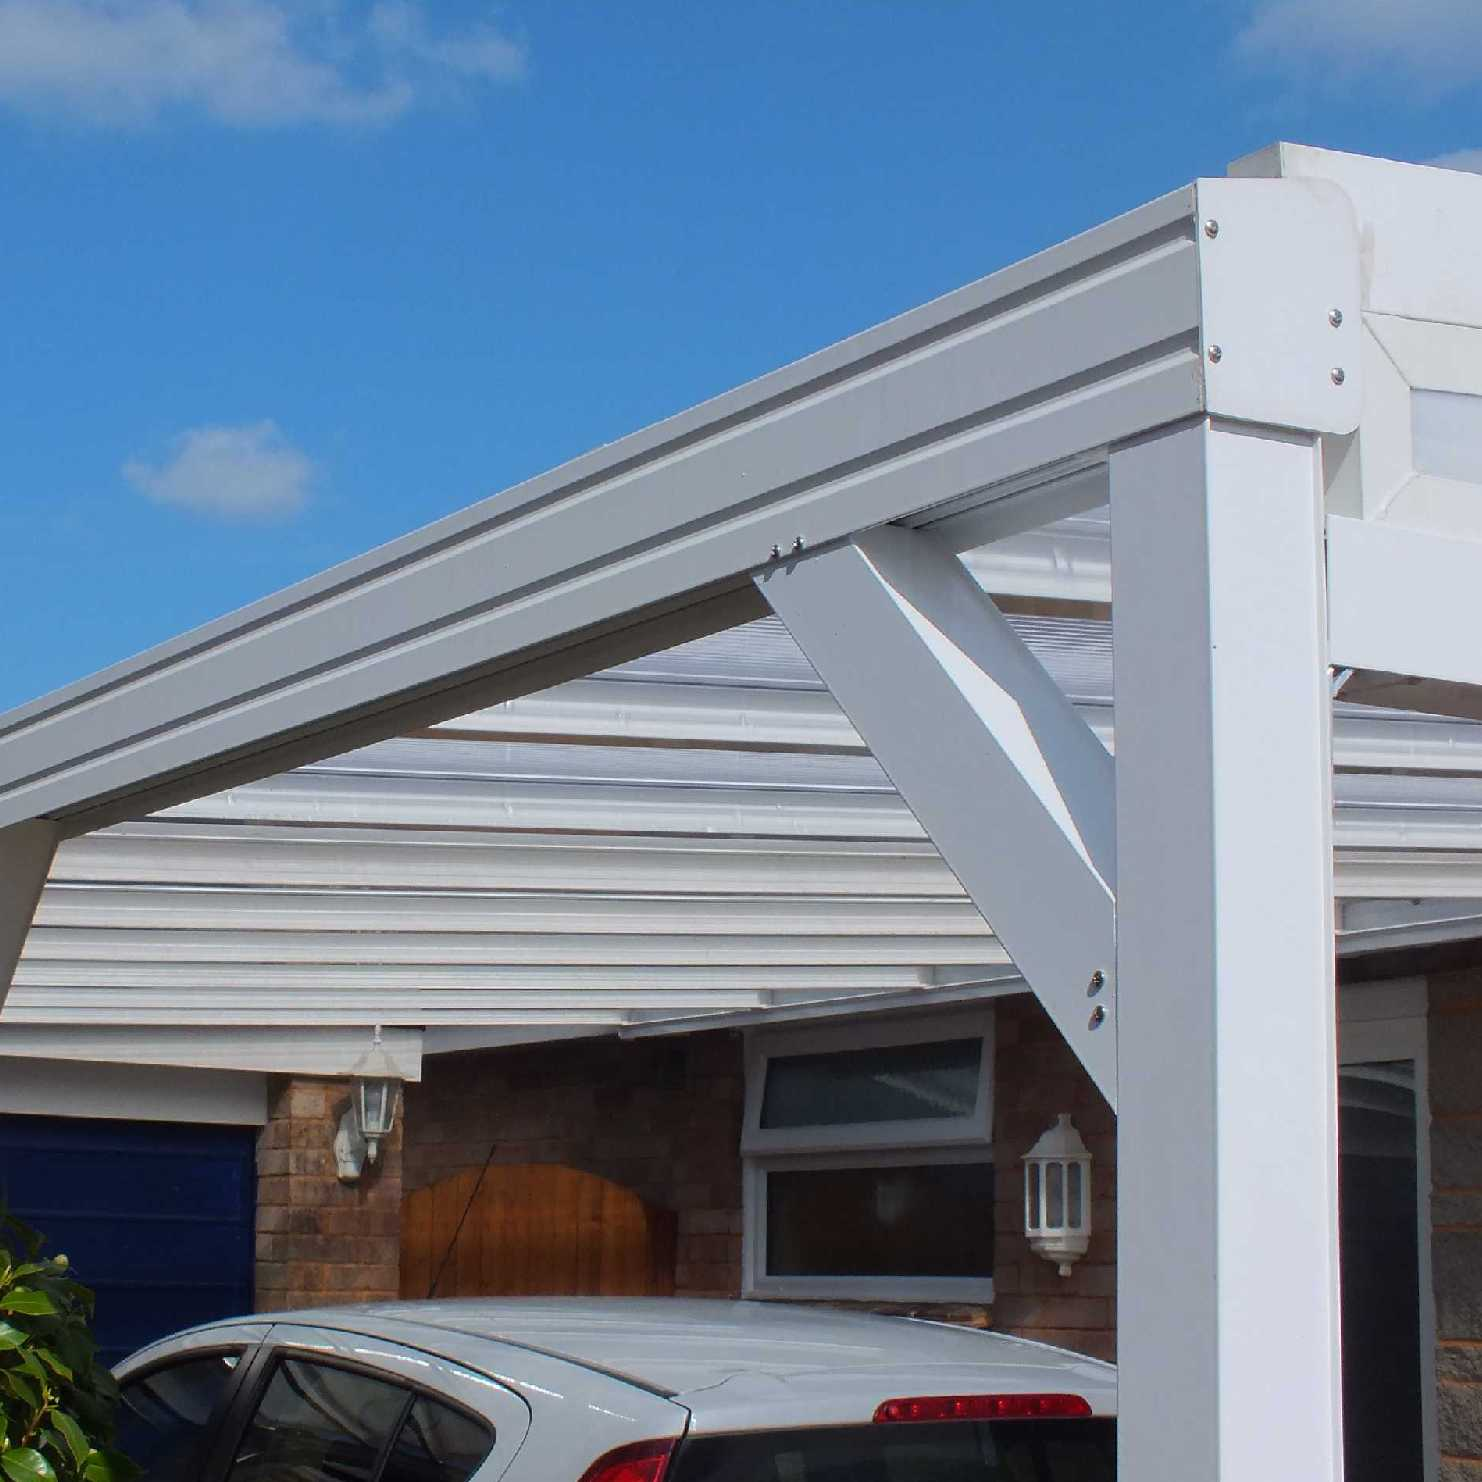 Great deals on Omega Smart Lean-To Canopy with 16mm Polycarbonate Glazing - 5.2m (W) x 2.0m (P), (3) Supporting Posts